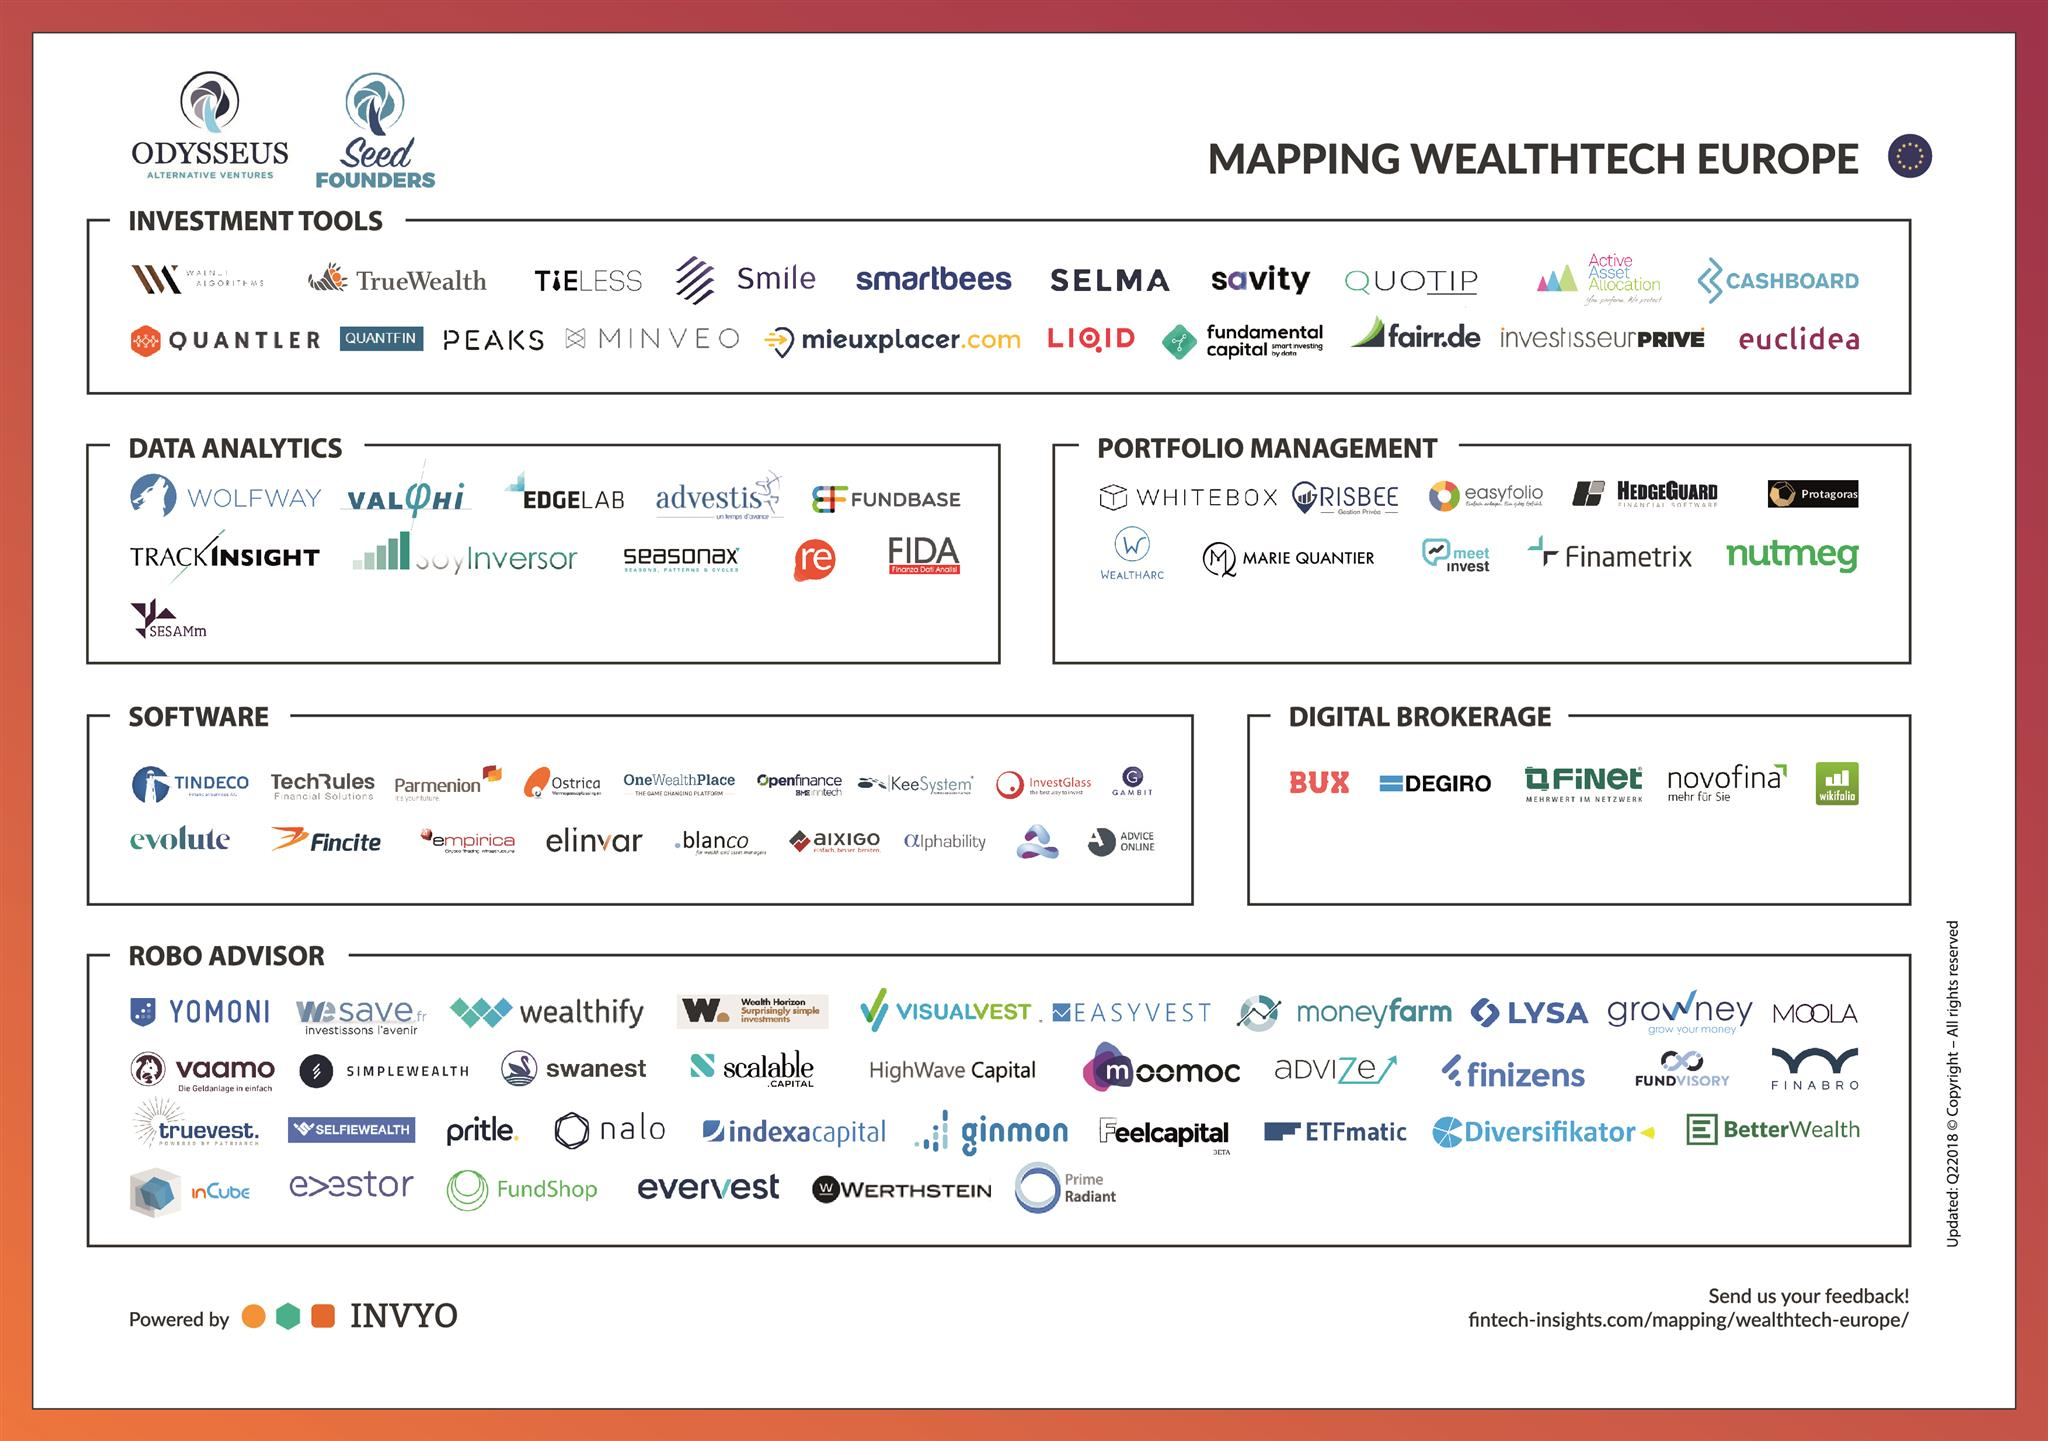 INVYO_Mapping Wealthtech Seedfounders 2018.jpg